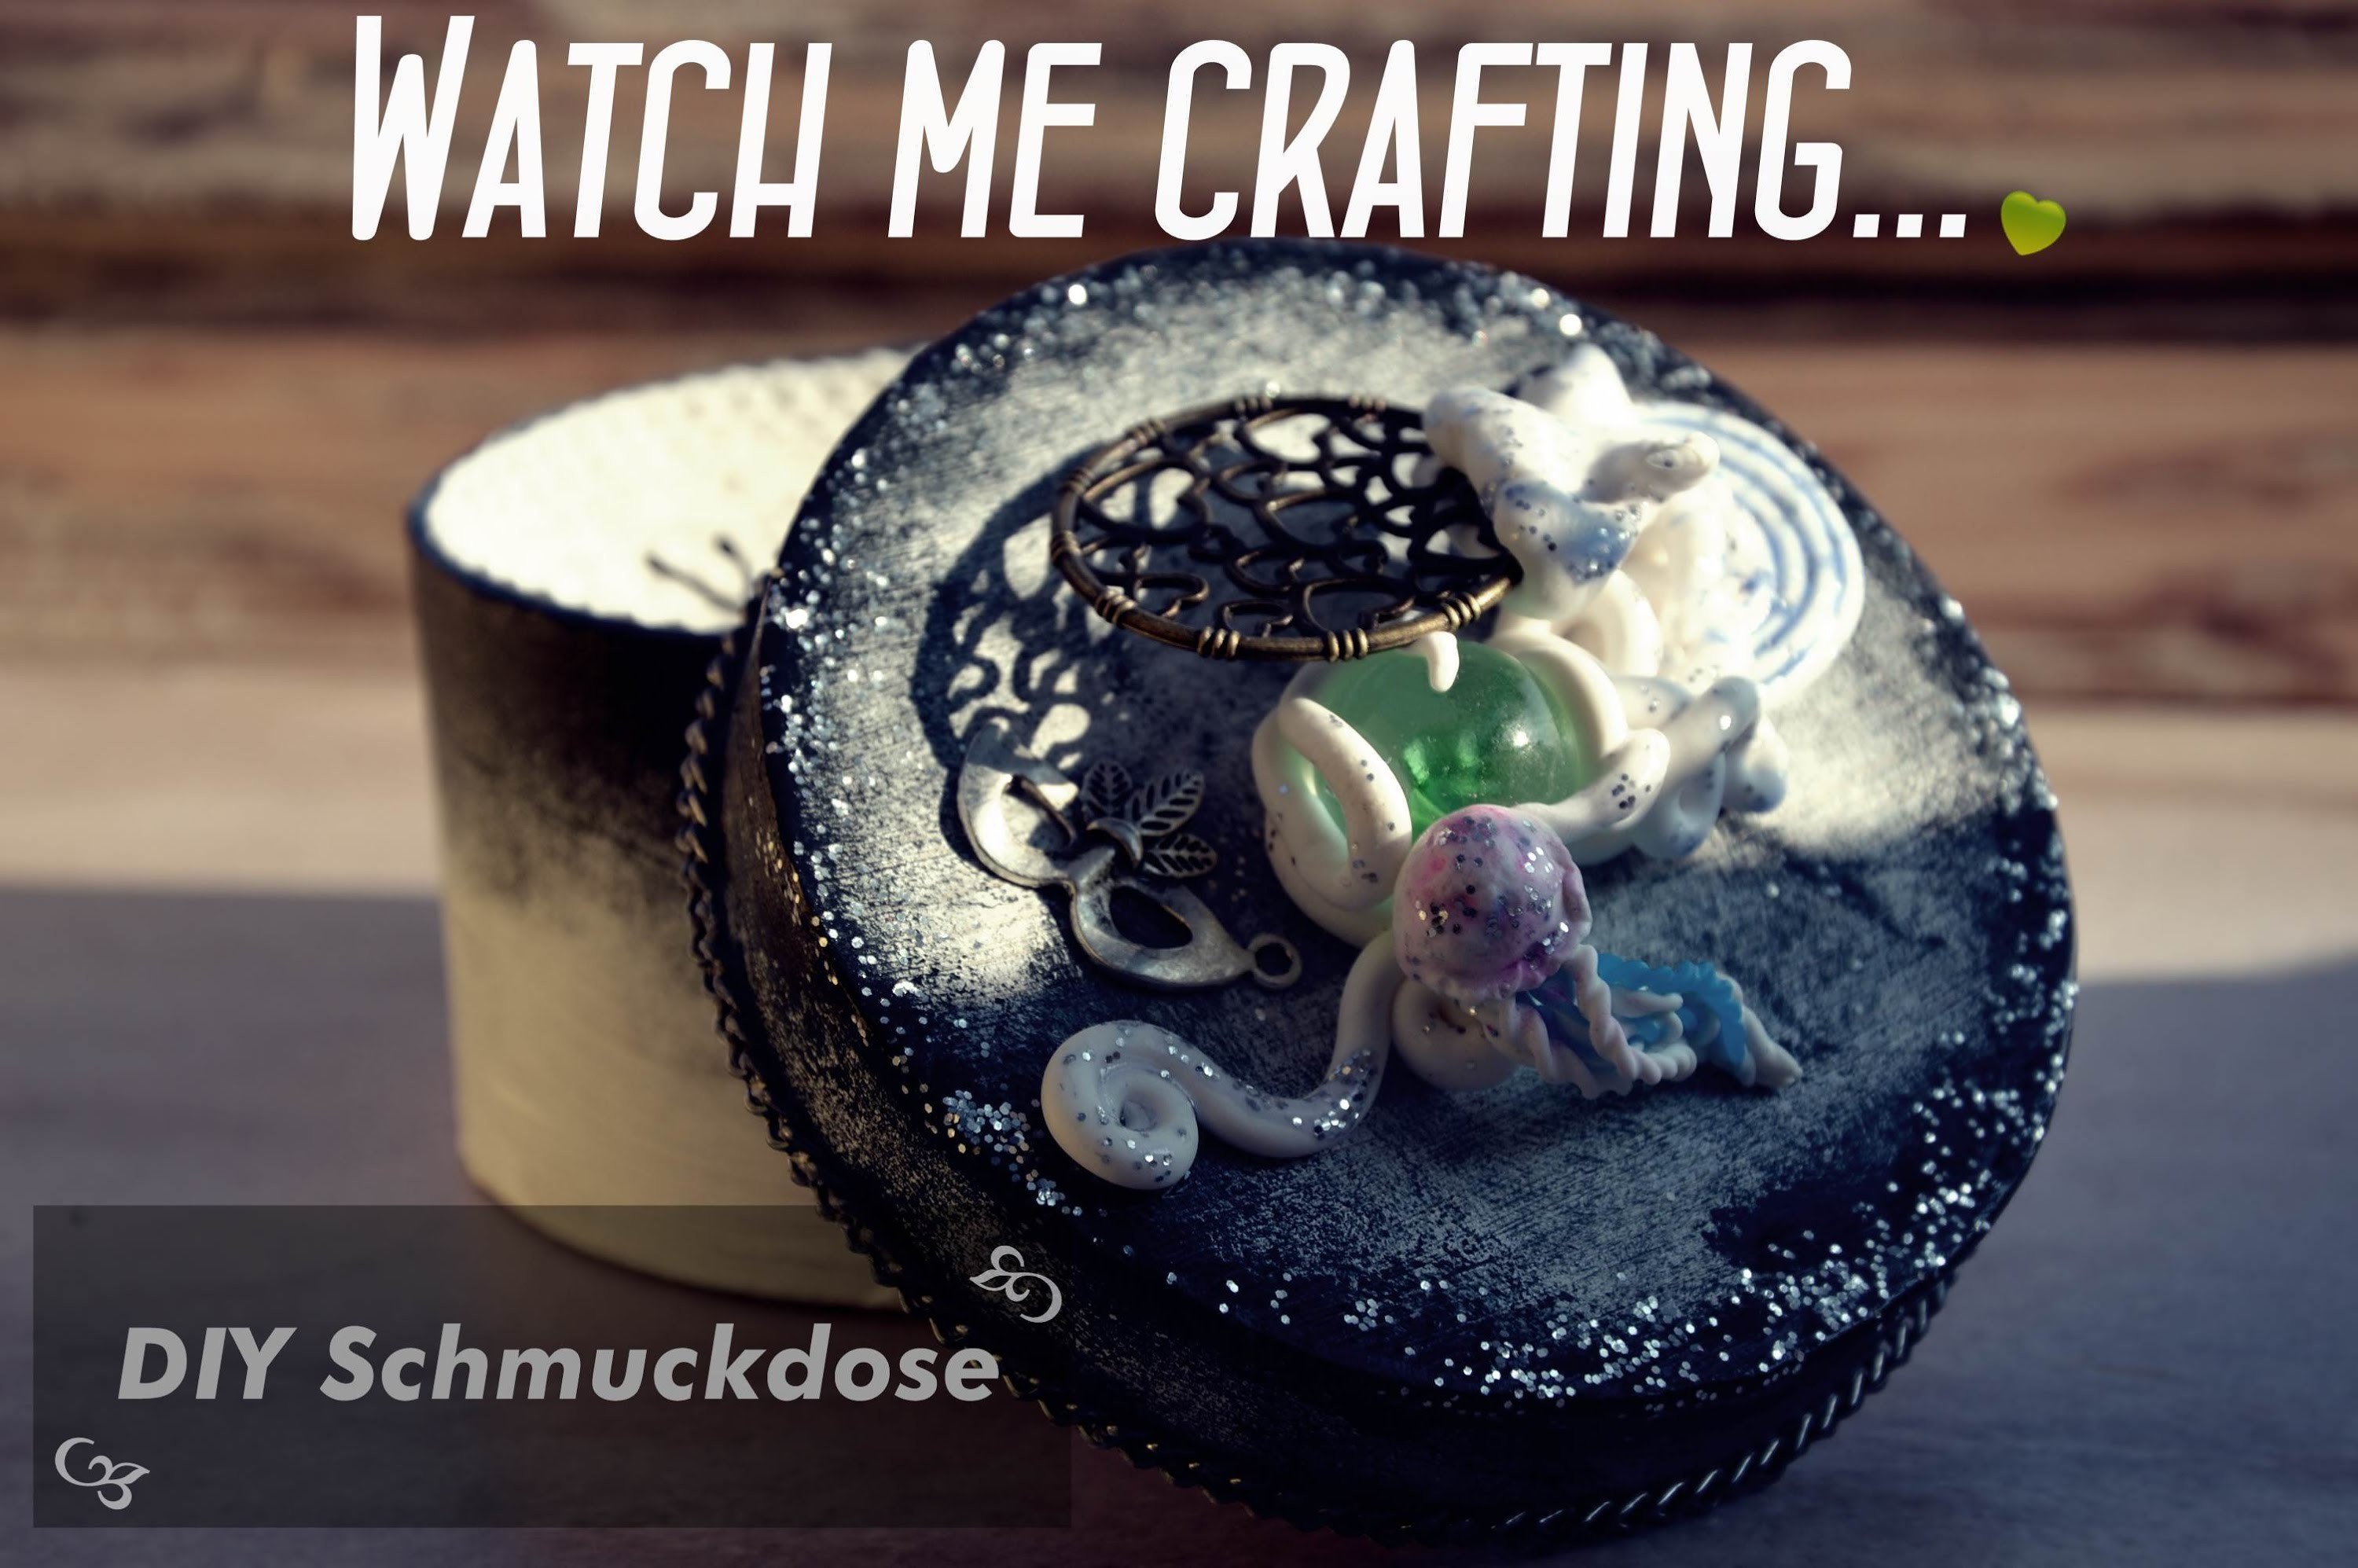 WATCH ME CRAFTING.  - Schmuckdose basteln | DIY | How to.  |Kiwilinchen007